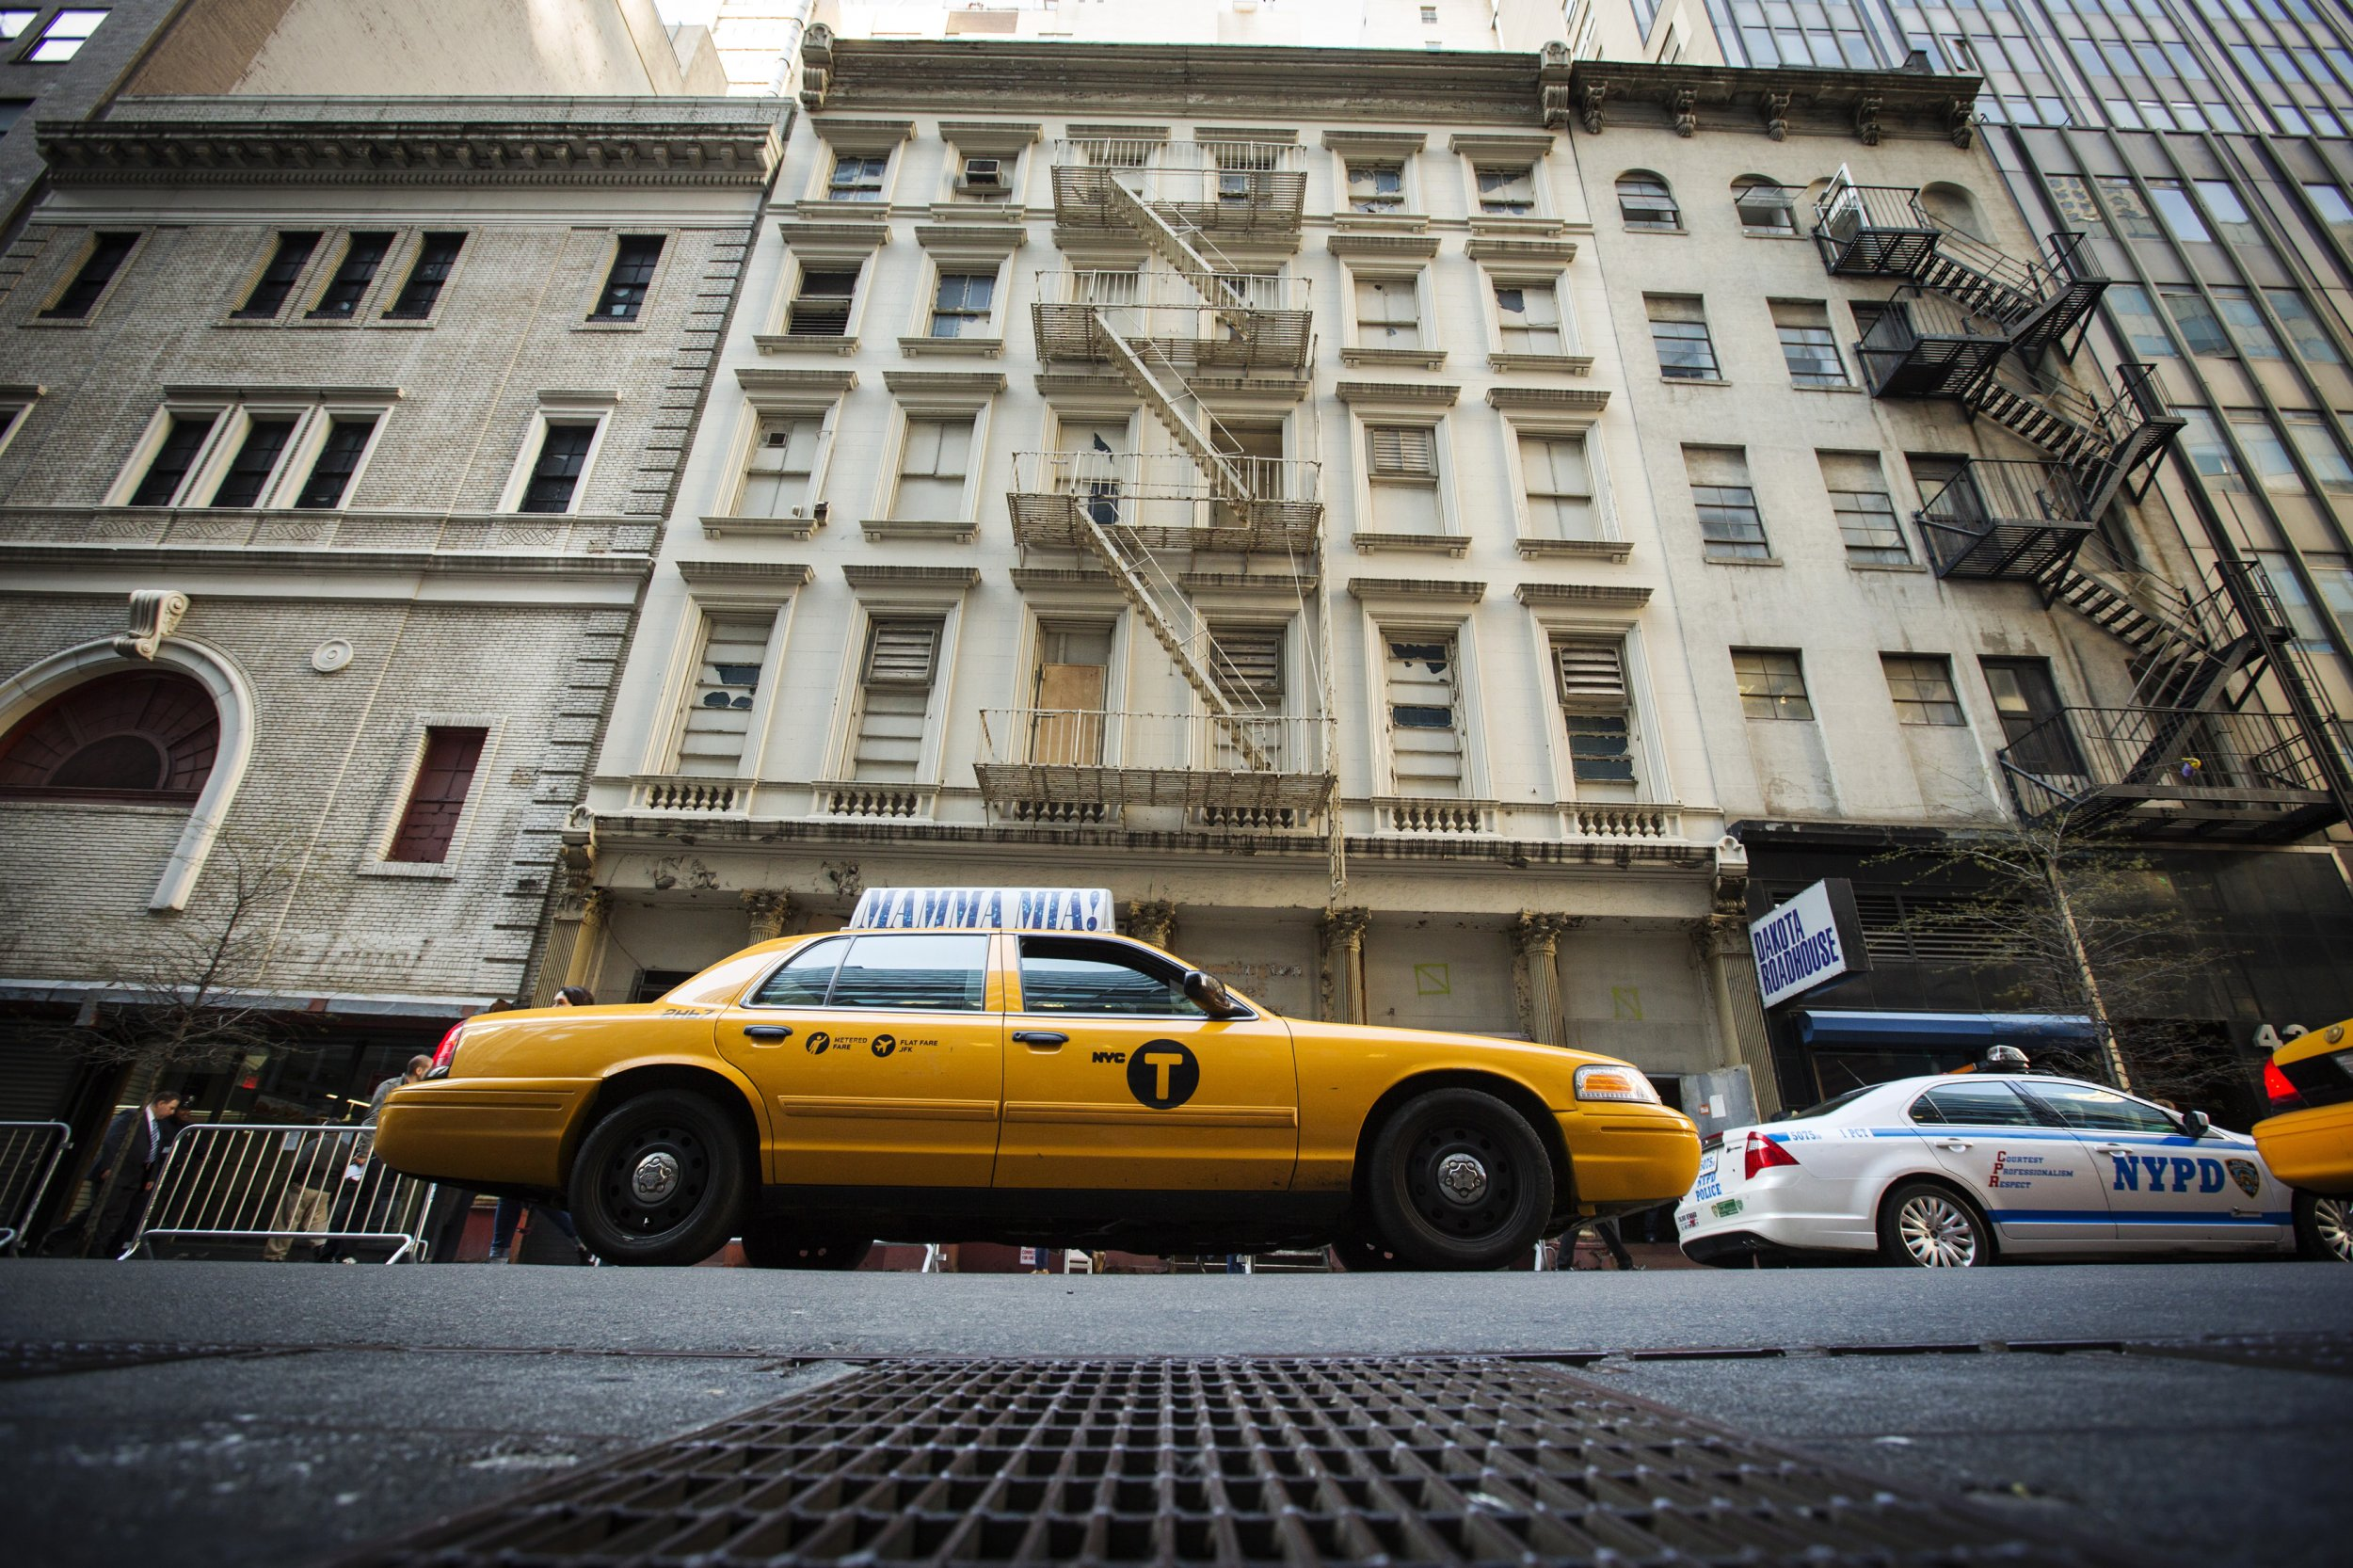 Lyft Car Requirements >> Rideshare Company Lyft Launches in NYC; City Questions Its Legality